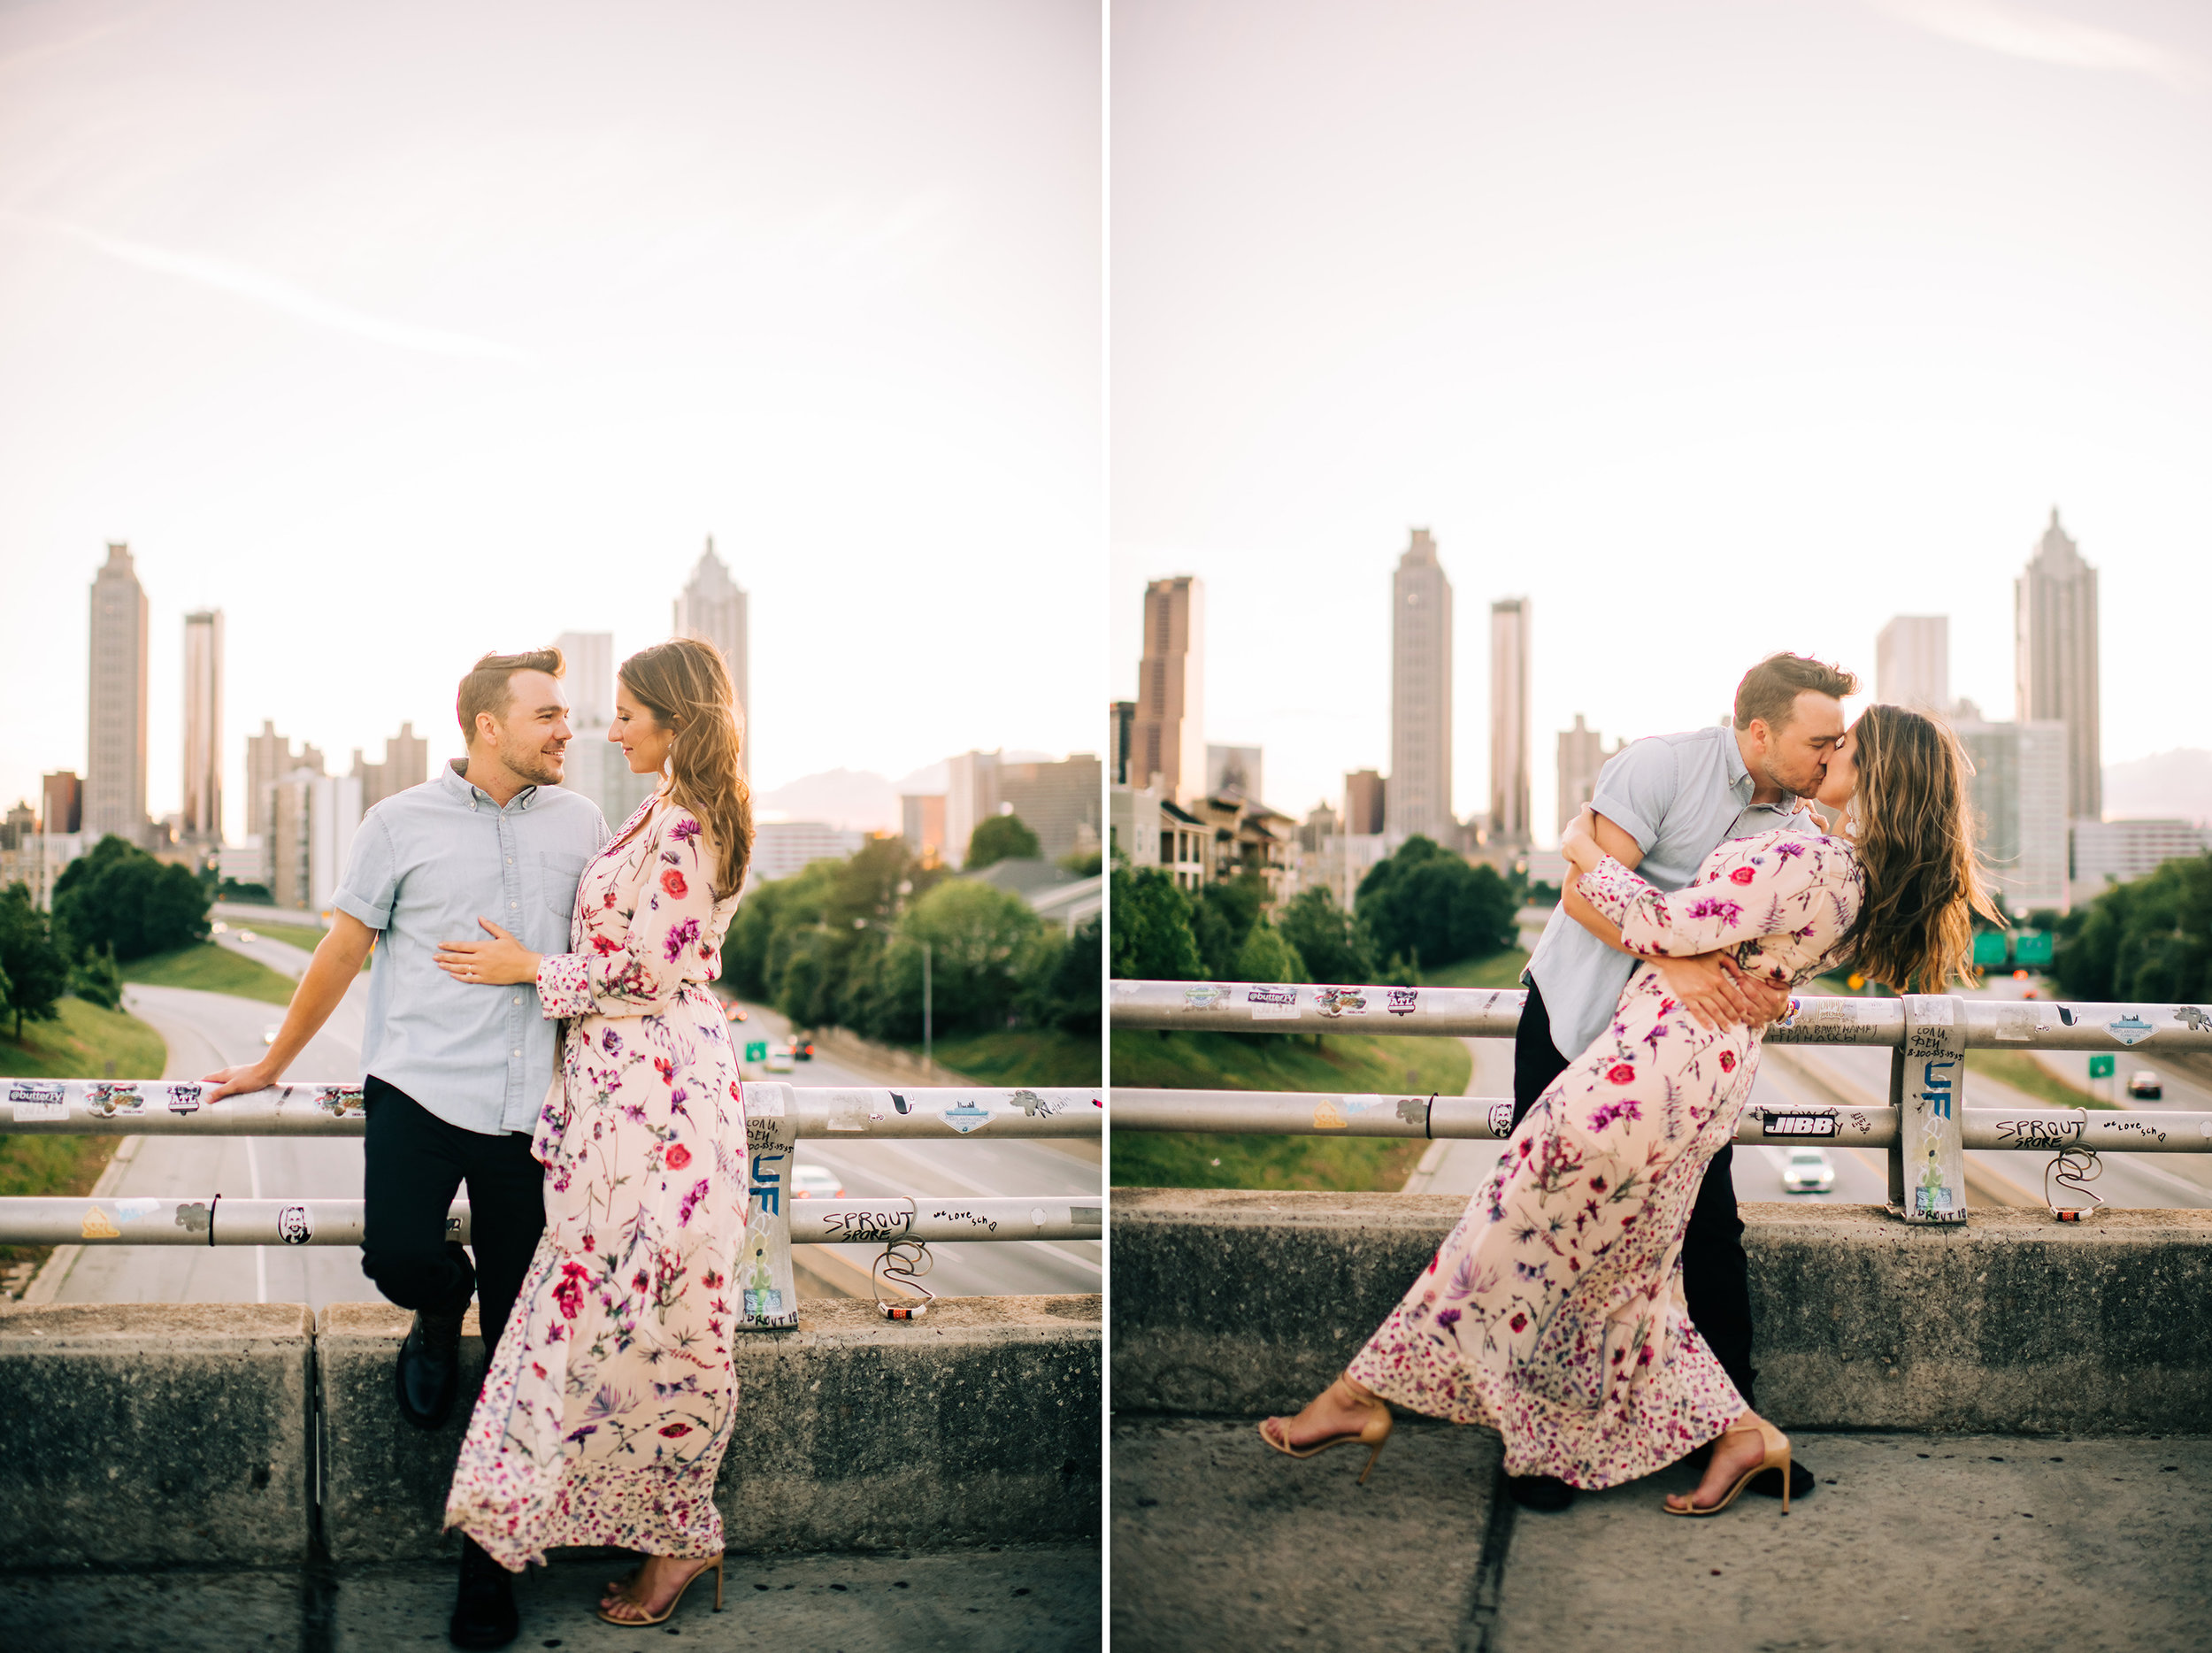 atlanta midtown cabbagetown jackson street bridge oakland san francisco engagement wedding nontraditional fun creative eclectic photographer magic-297.jpg